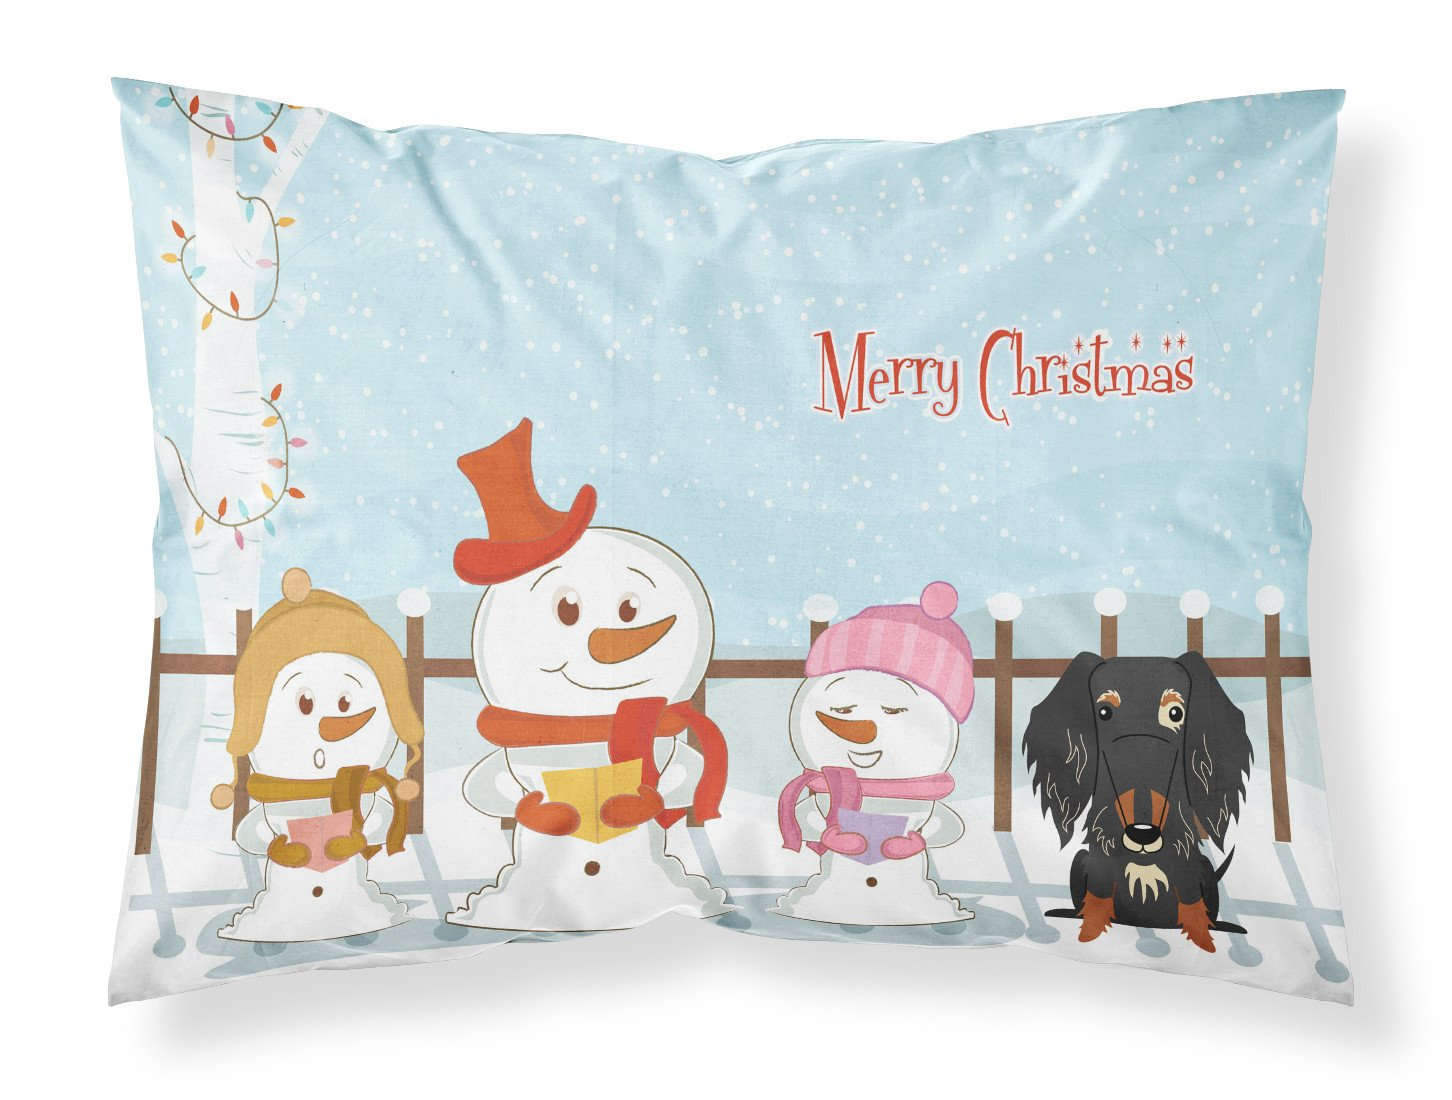 Merry Christmas Carolers Wire Haired Dachshund Dapple Fabric Standard Pillowcase BB2459PILLOWCASE by Caroline's Treasures